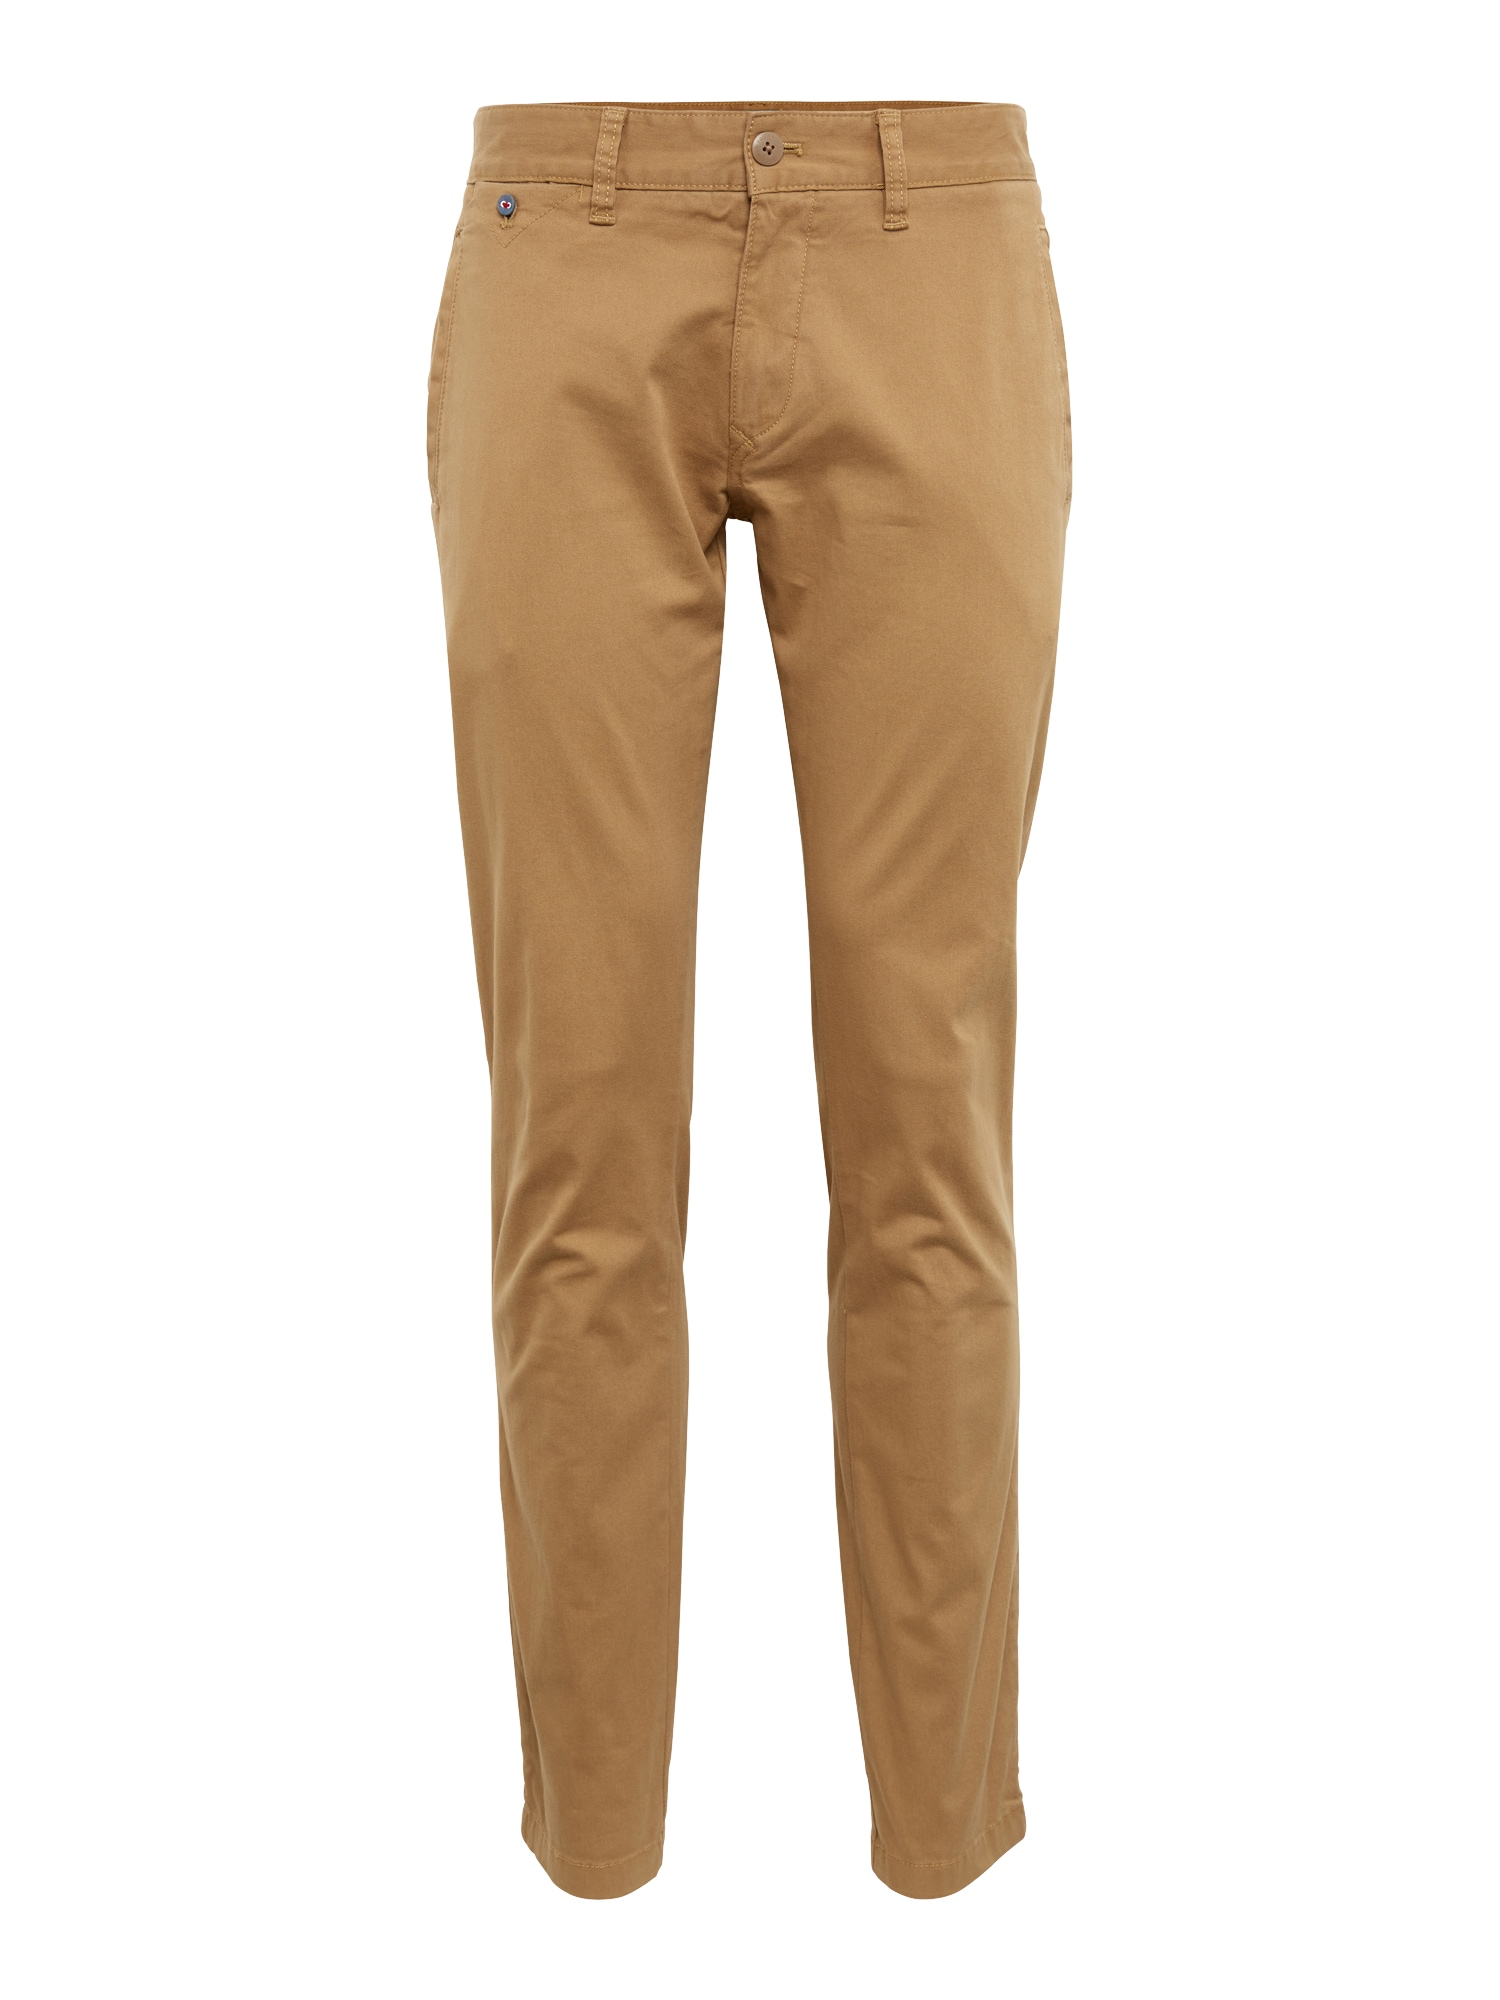 Chino 'TJM ORIGINAL SLIM FIT' | Bekleidung > Hosen > Chinohosen | Tommy Jeans